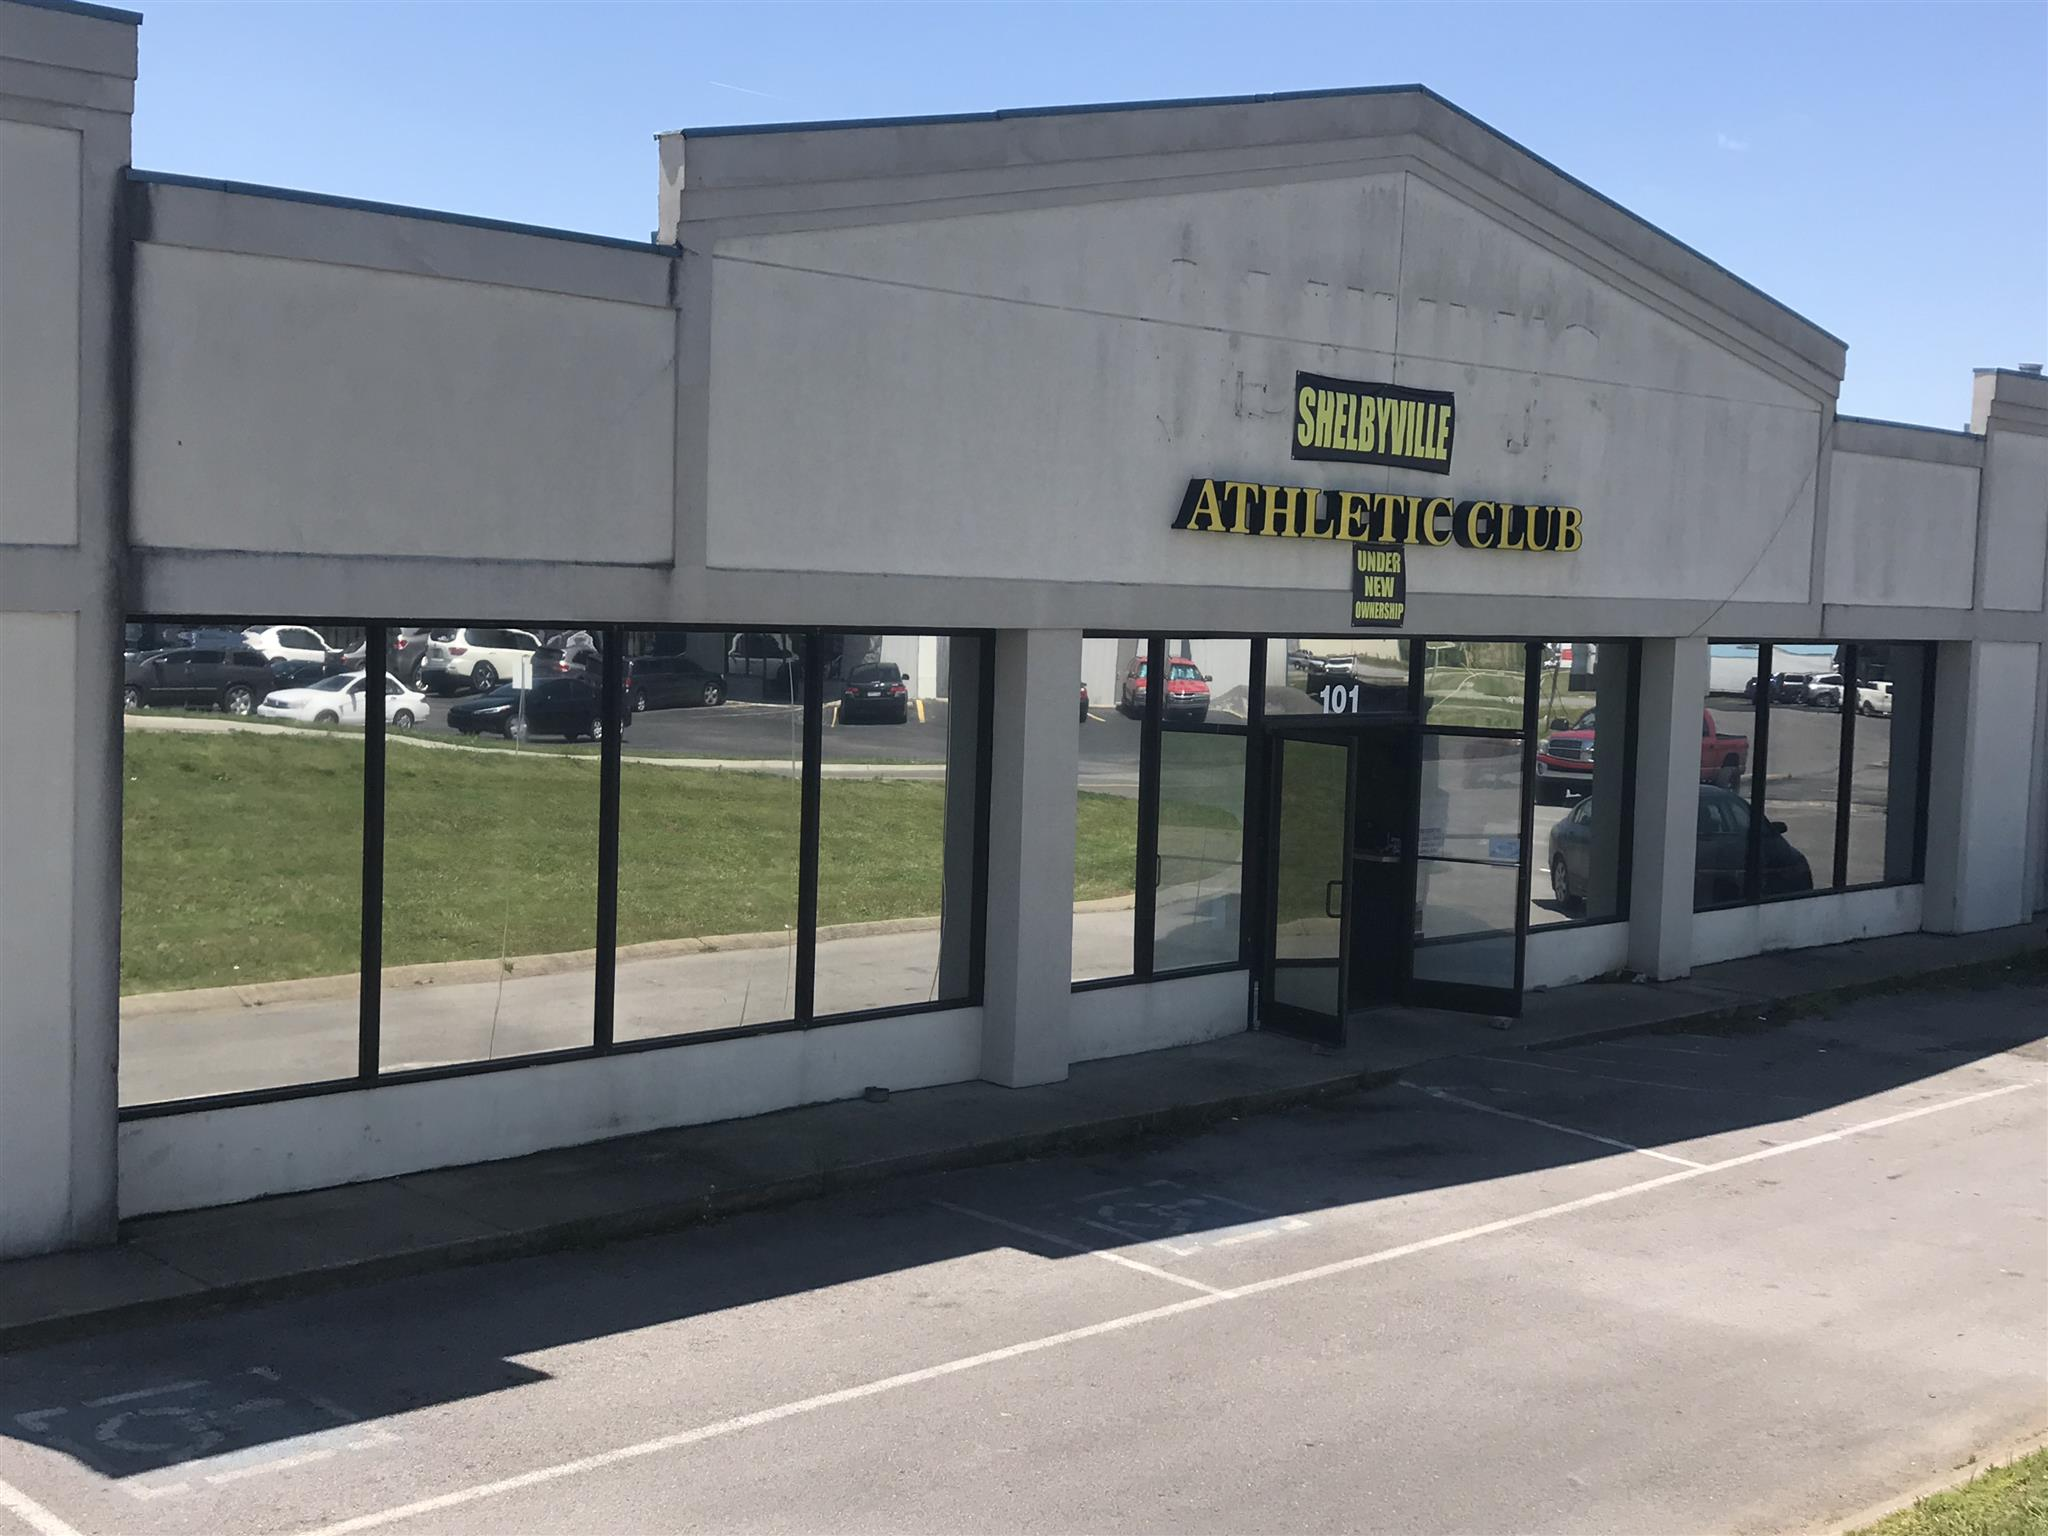 7500+ sq. ft. with a current tenant and with many possibilities.  2 lorckerrooms, 2 bathrooms, open floor space, and office space.  This is truly a place that has many options for whatever you like.  Great visibility and exposure directly off the main.